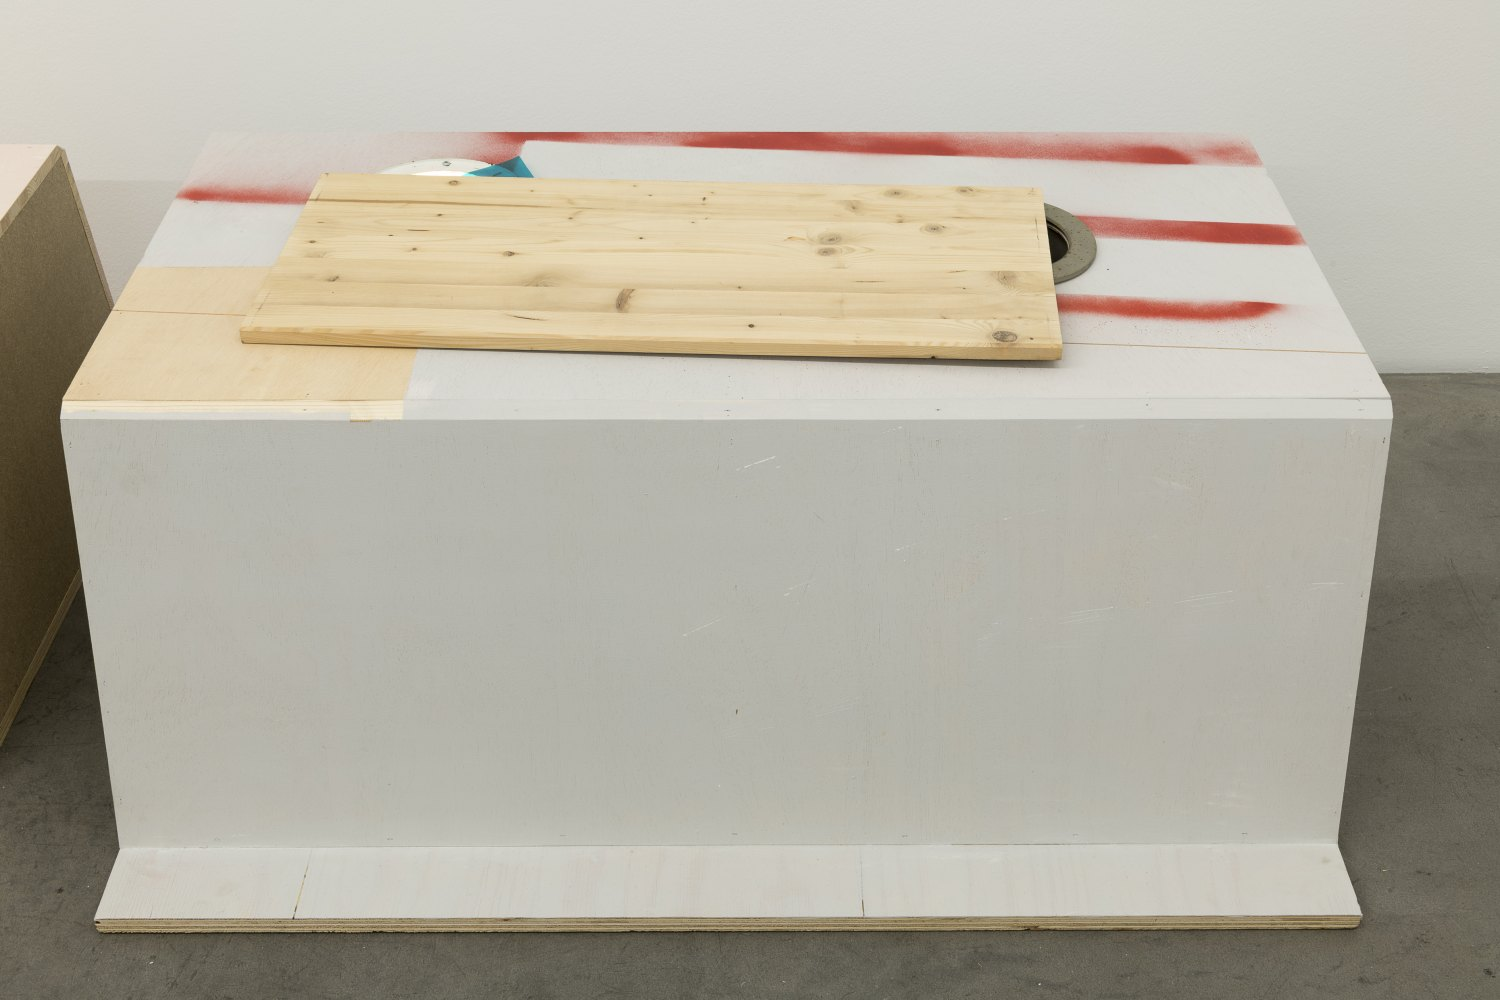 Manfred Pernice Goethe VI, 2021 wood, LED lamps, electric cable, light dimmer, plastic 49 x 125 x 105 cm